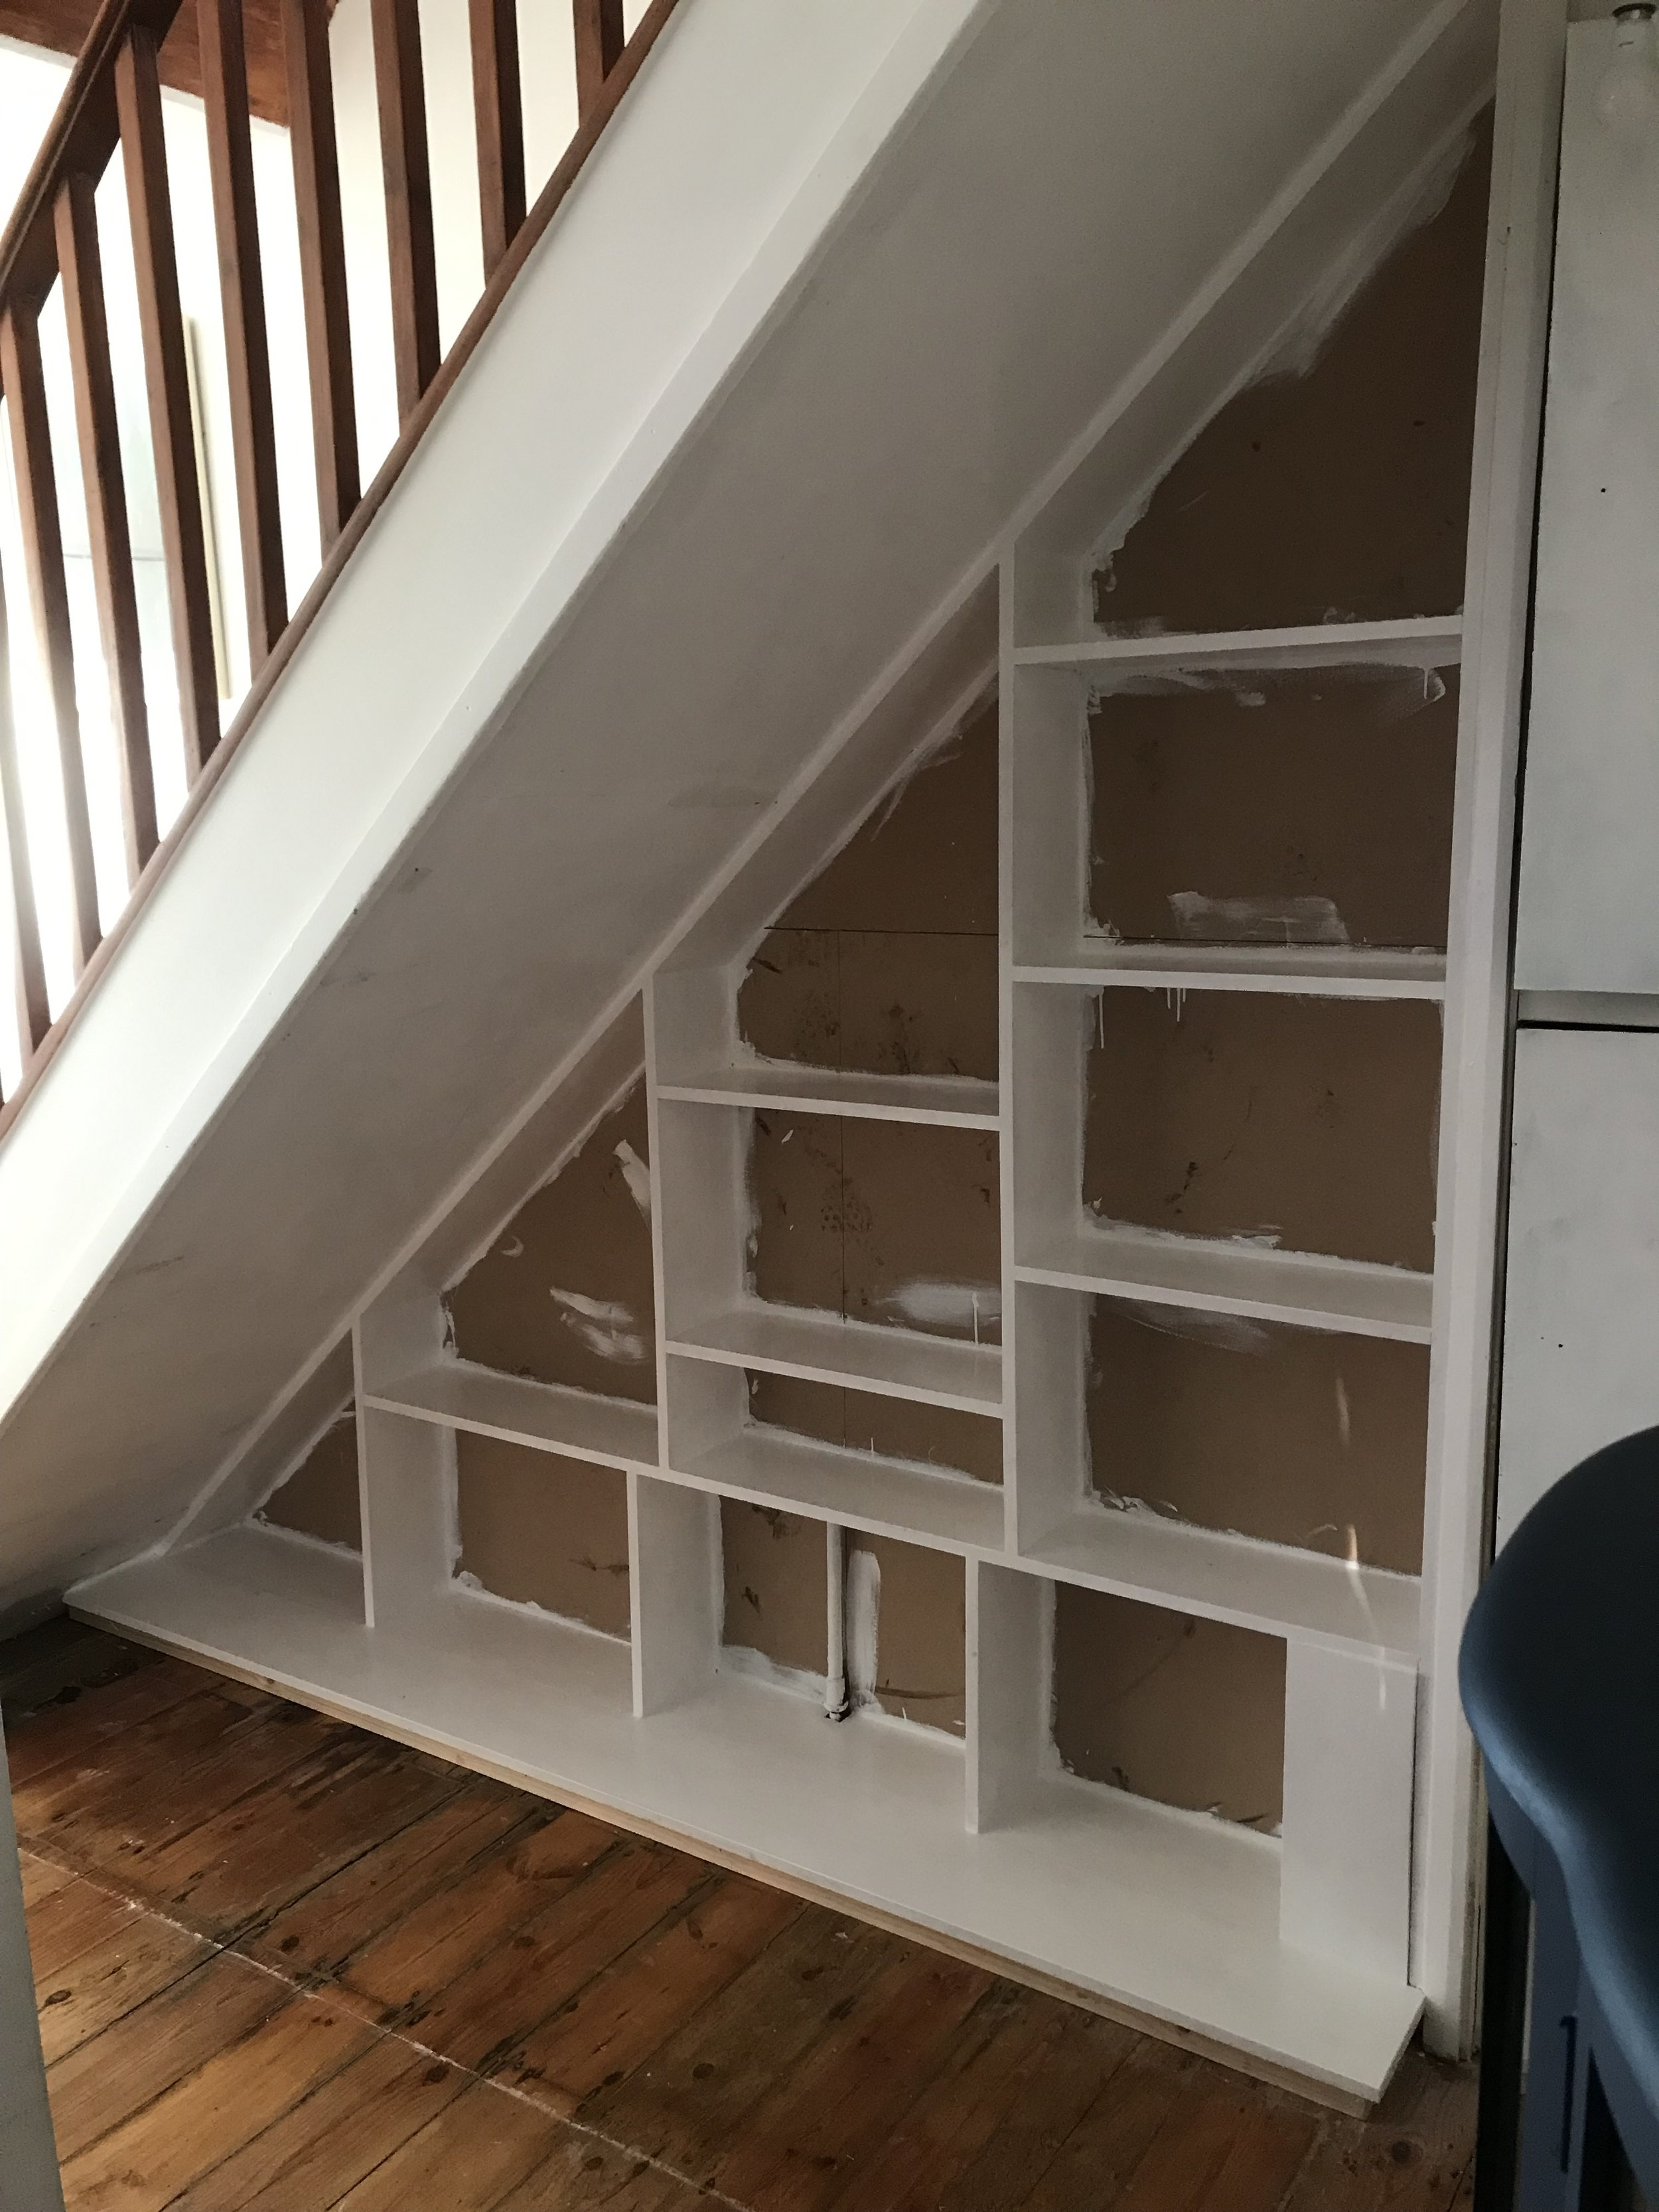 The finished shelves painted white